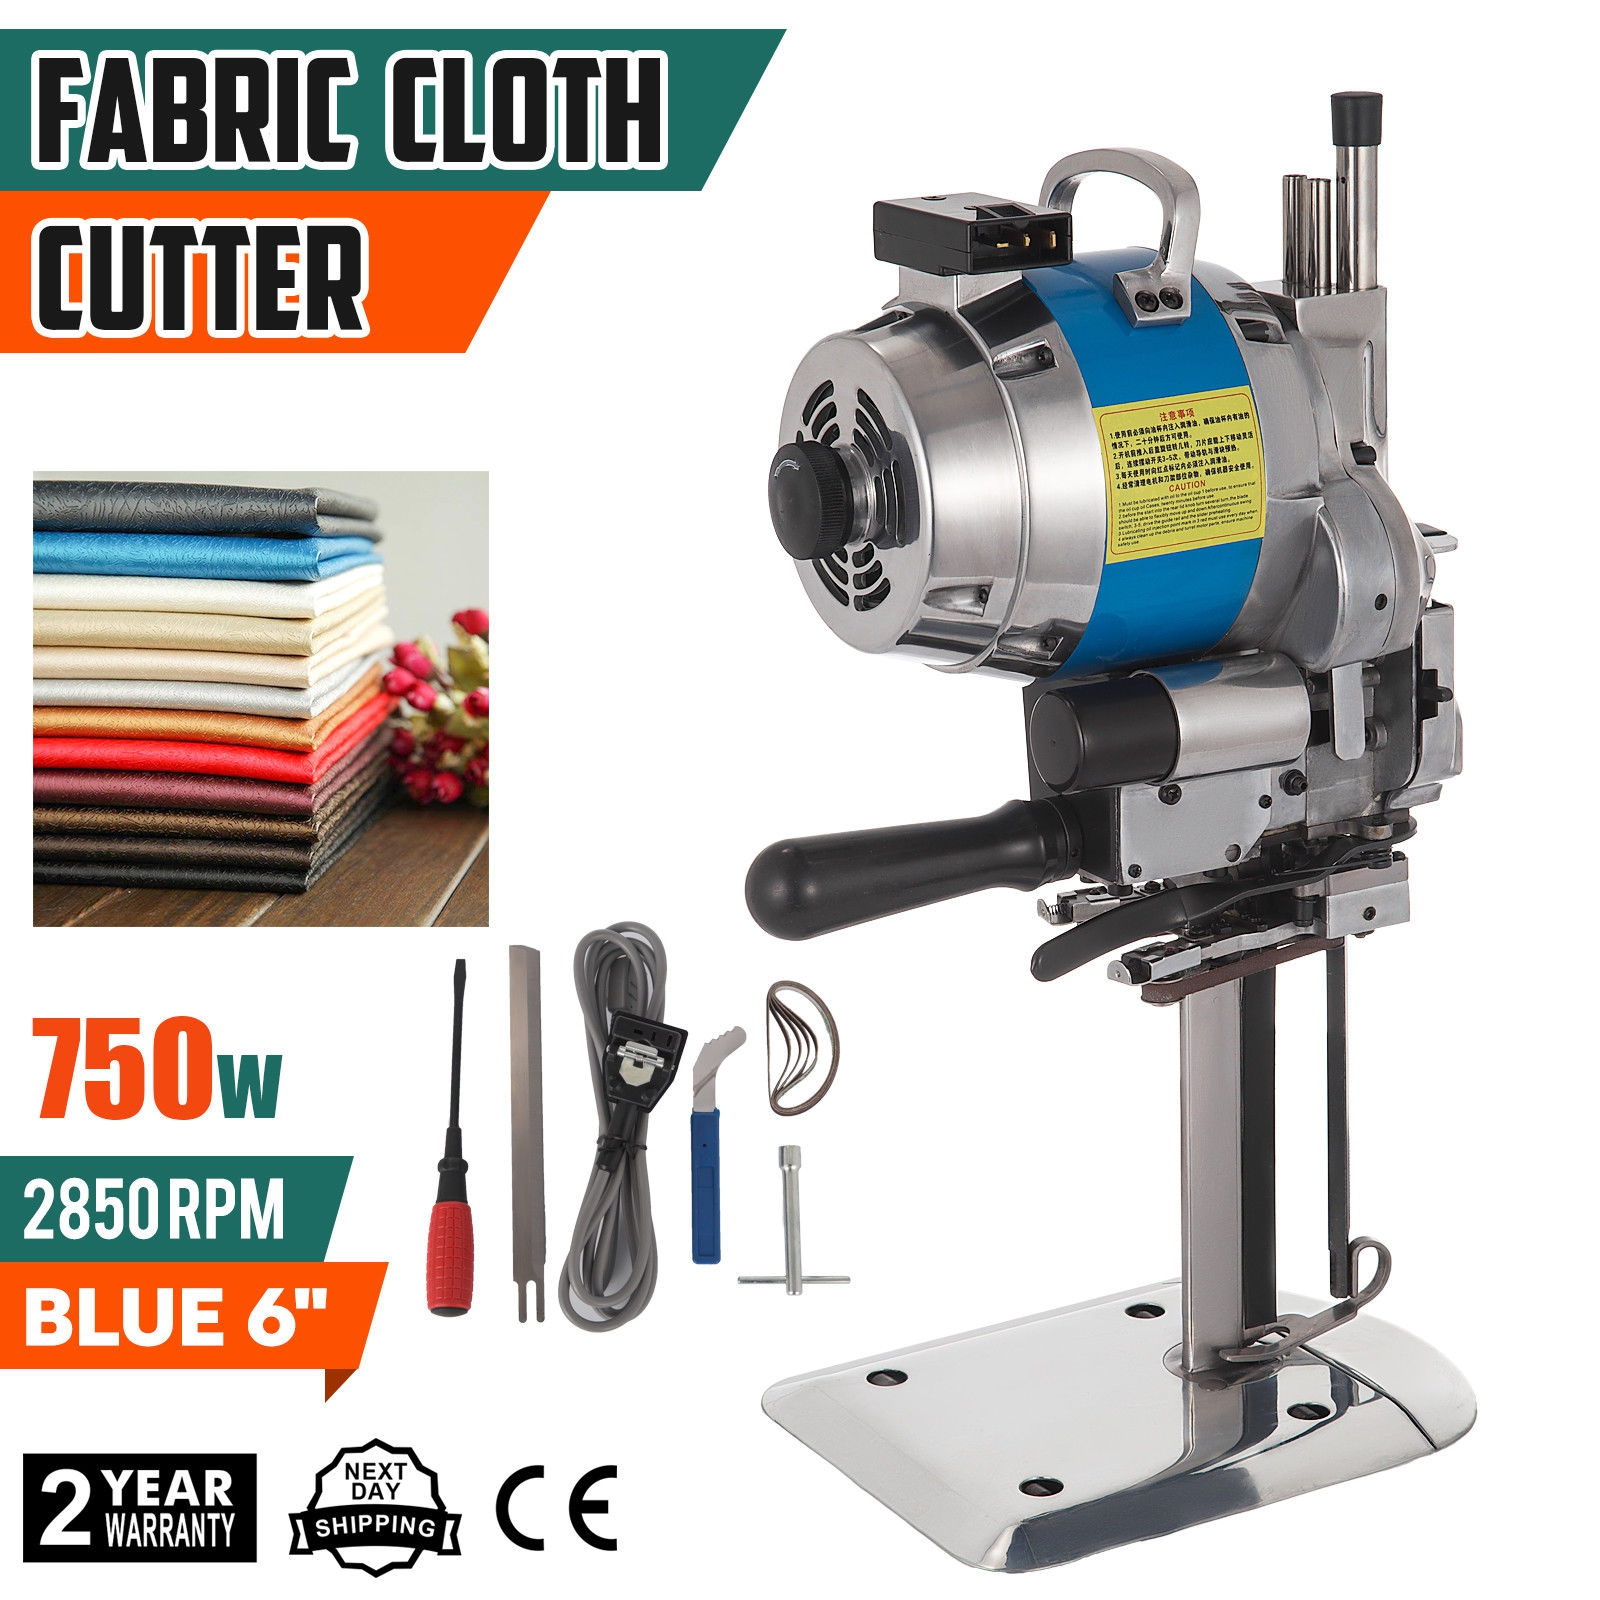 """Fabric Cloth Cutter Blue 8/"""" Cutting Machine Auto Sharpening Clothes Stable"""